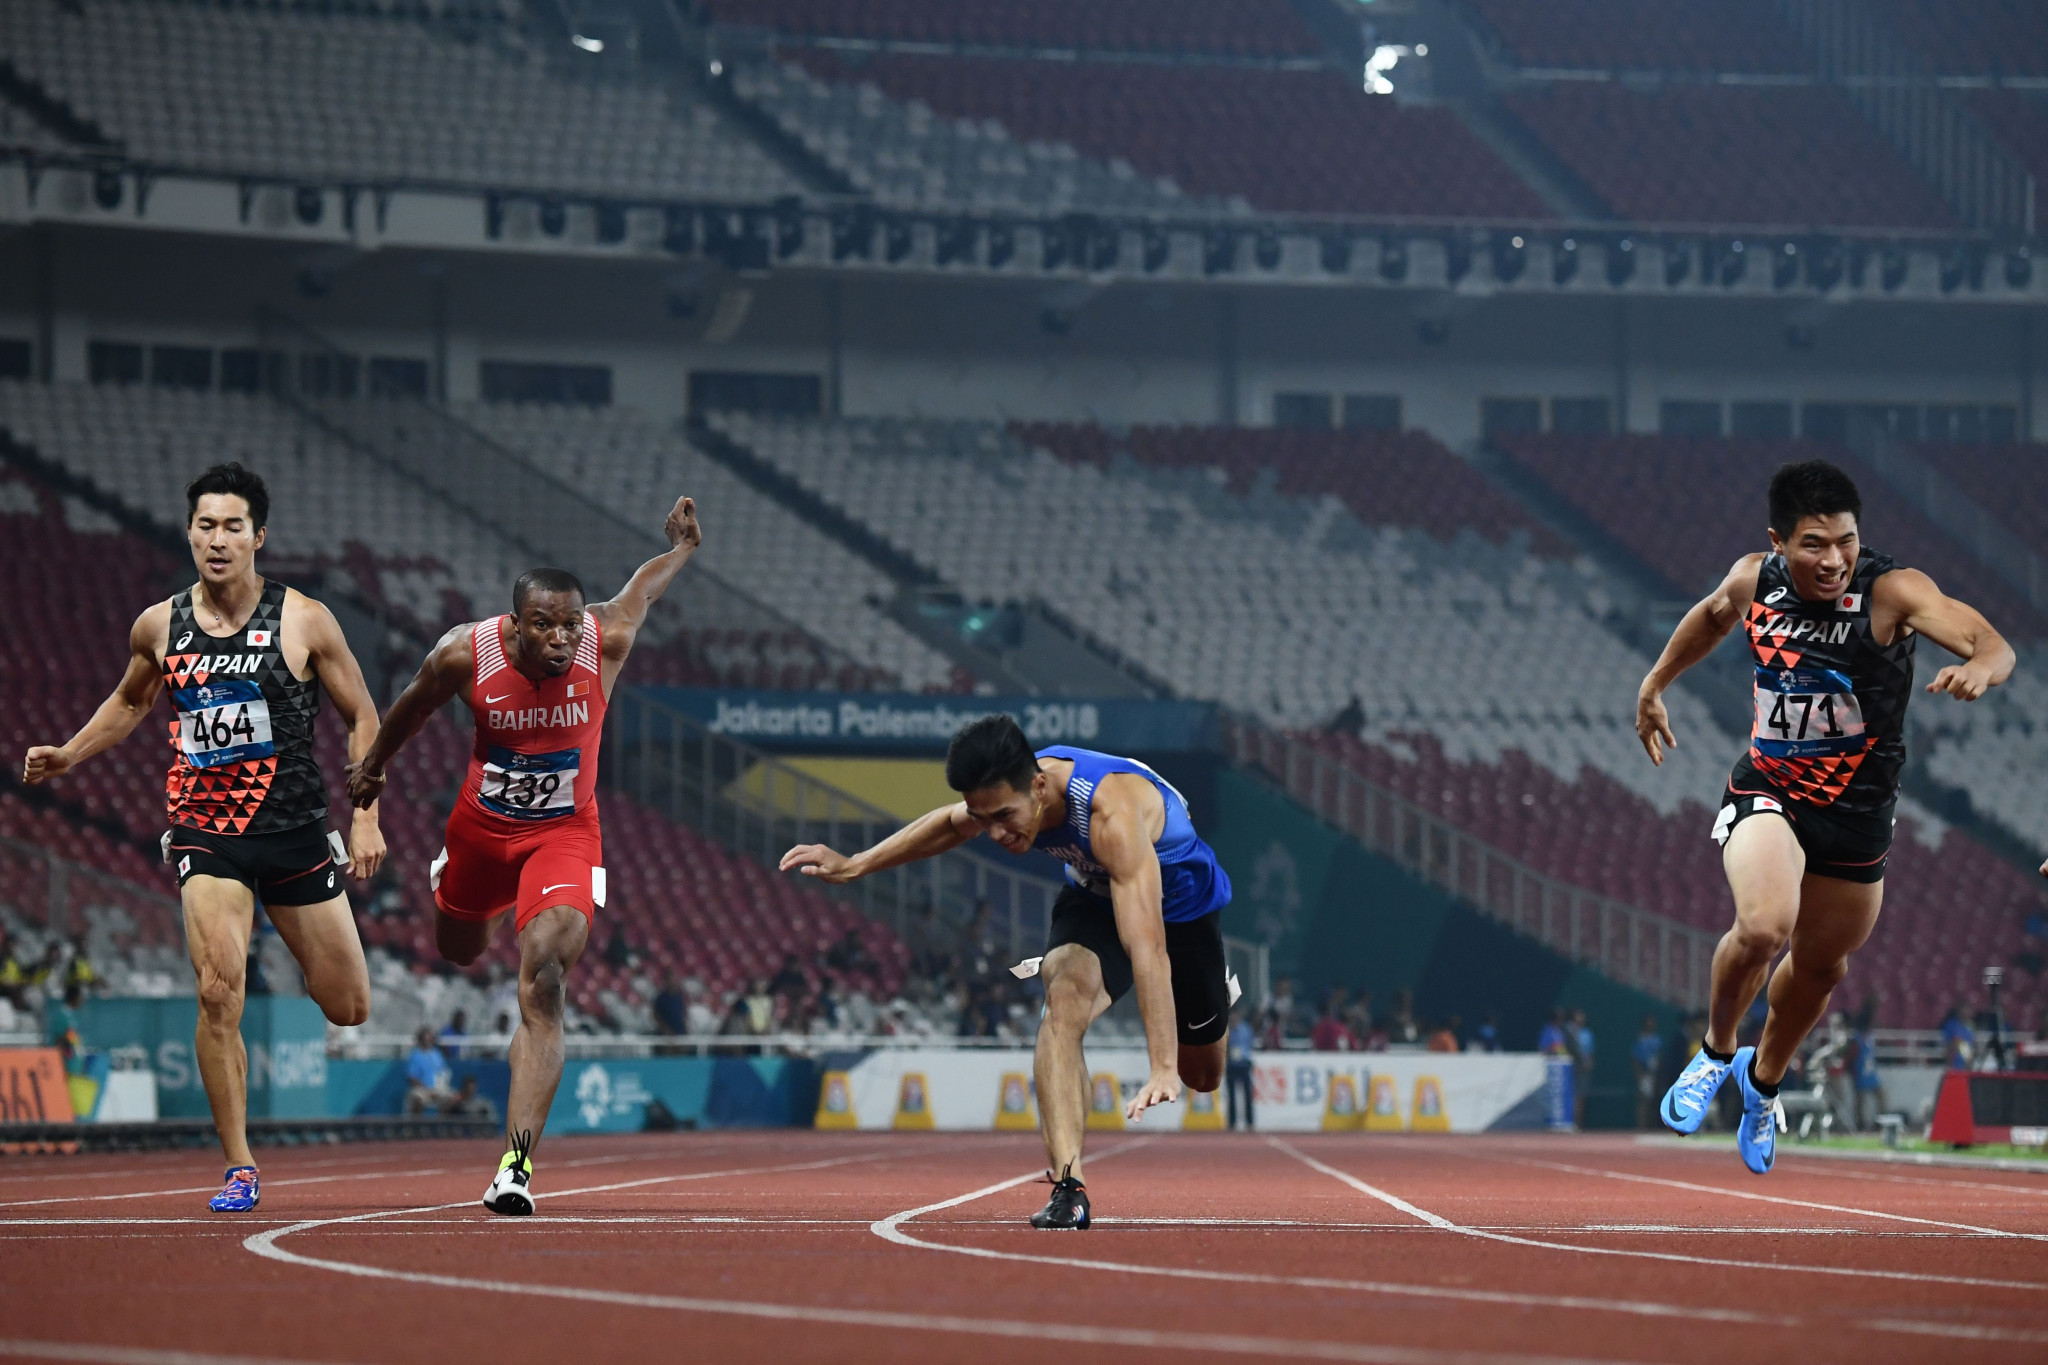 Chunhan Yang, centre, dipped for the line too early in the men's 200m and lost his balance, meaning Yuki Kioke, right, snatched the gold ©Getty Images